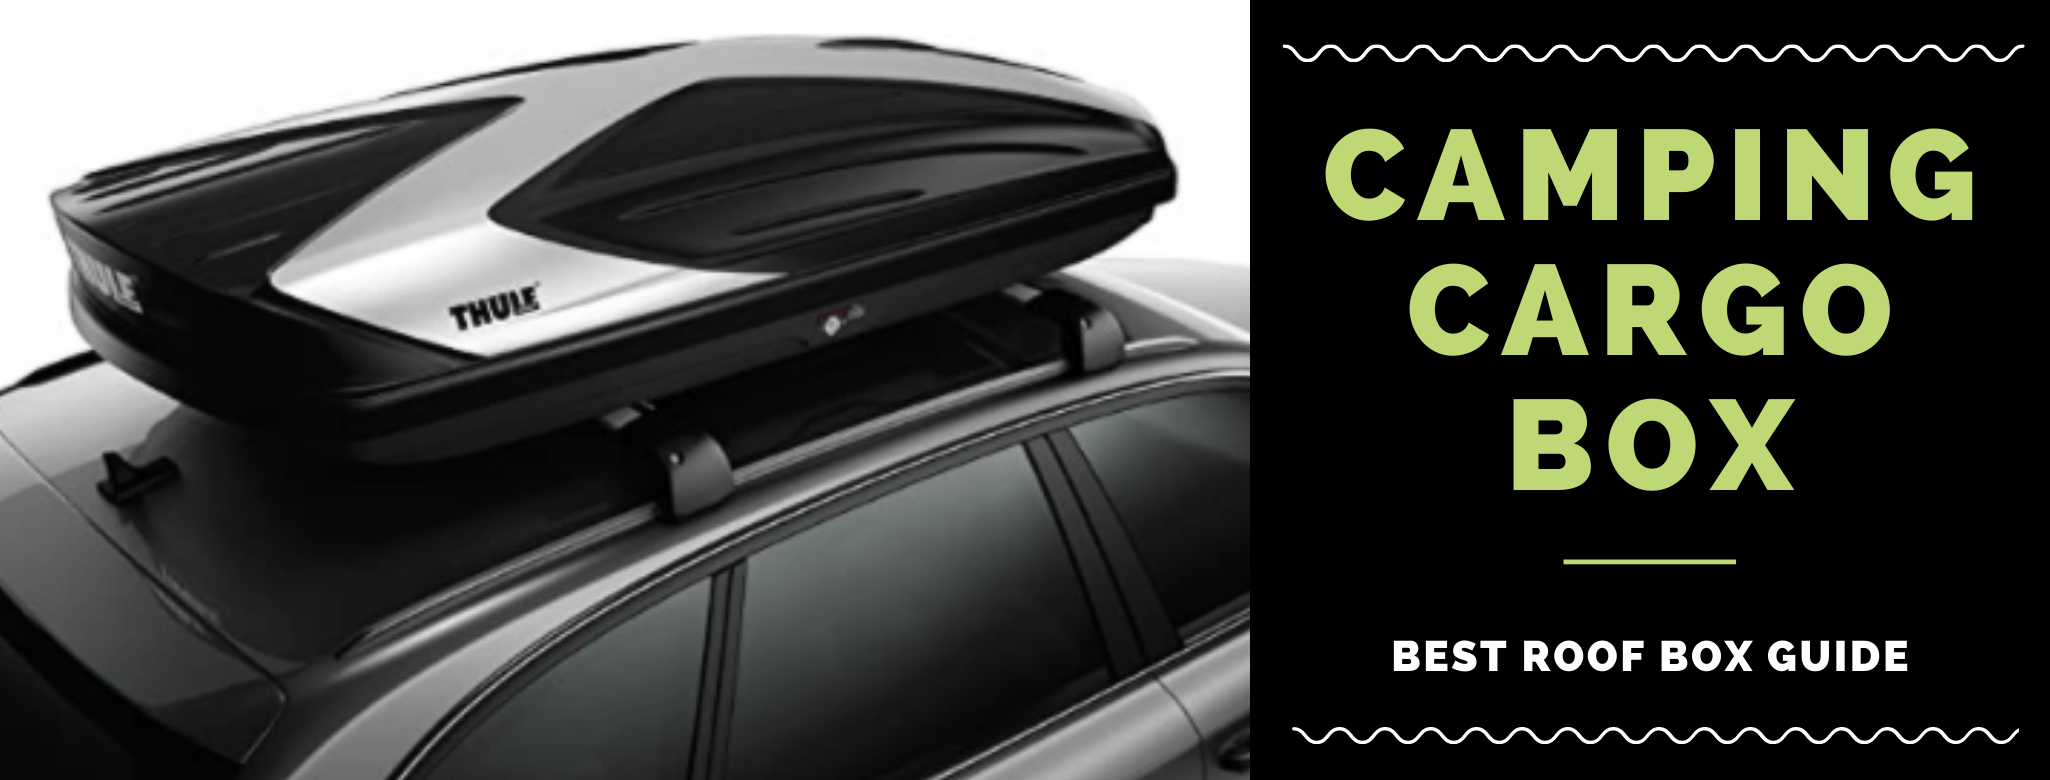 🏕️ Best Camping Cargo Box Reviews | Top Roof Boxes For Camping 🚘